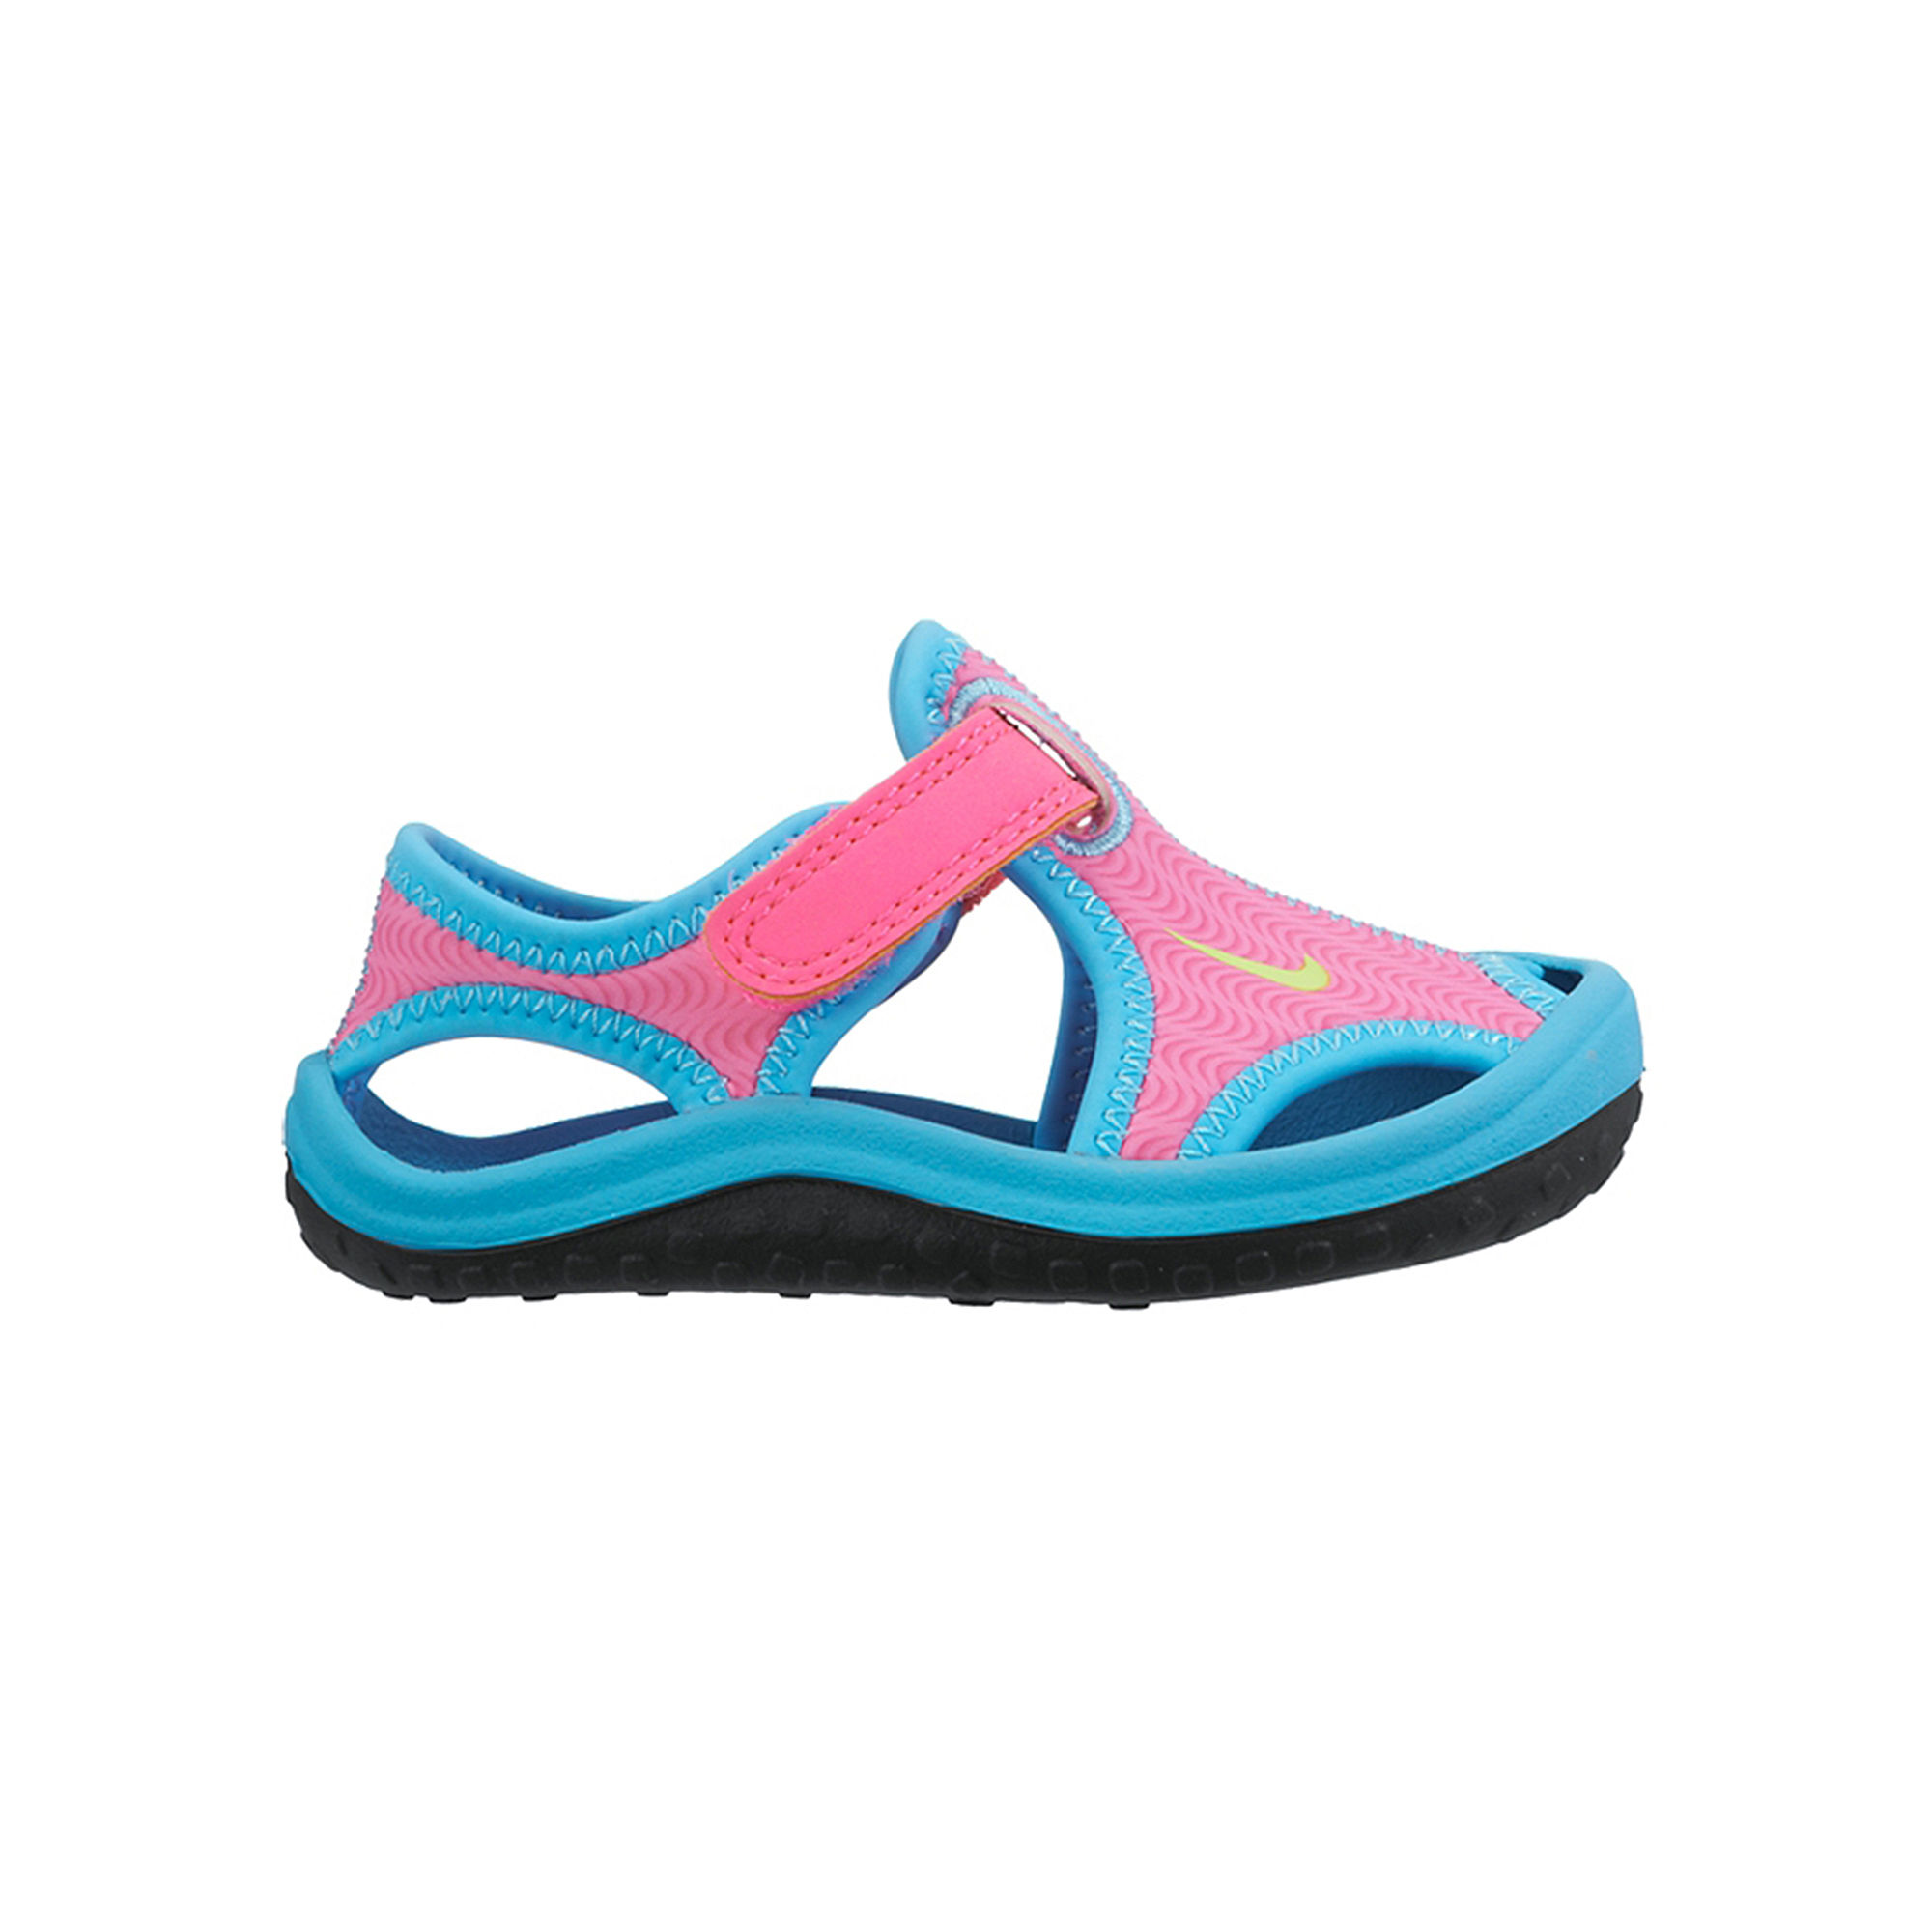 549b3b88a2be ... dk grey e53e0 cf29e 50% off upc 886550527477 product image for nike  sunray protect girls athletic sandals toddler upcitemdb ...